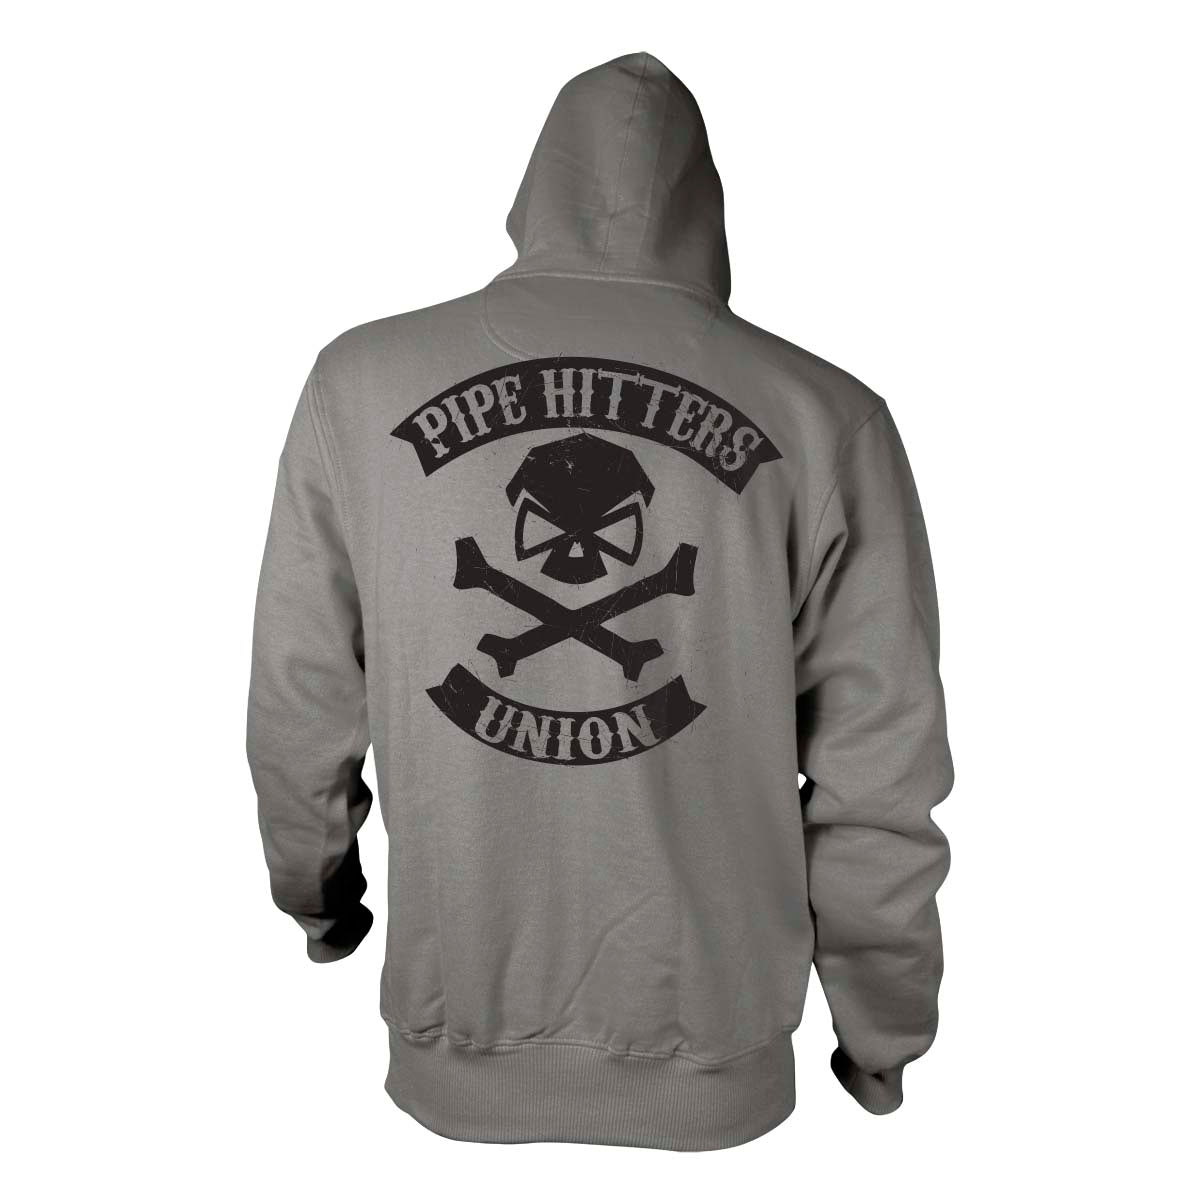 Sons of Conflict Hoodie - Grey - Hoodies - Pipe Hitters Union